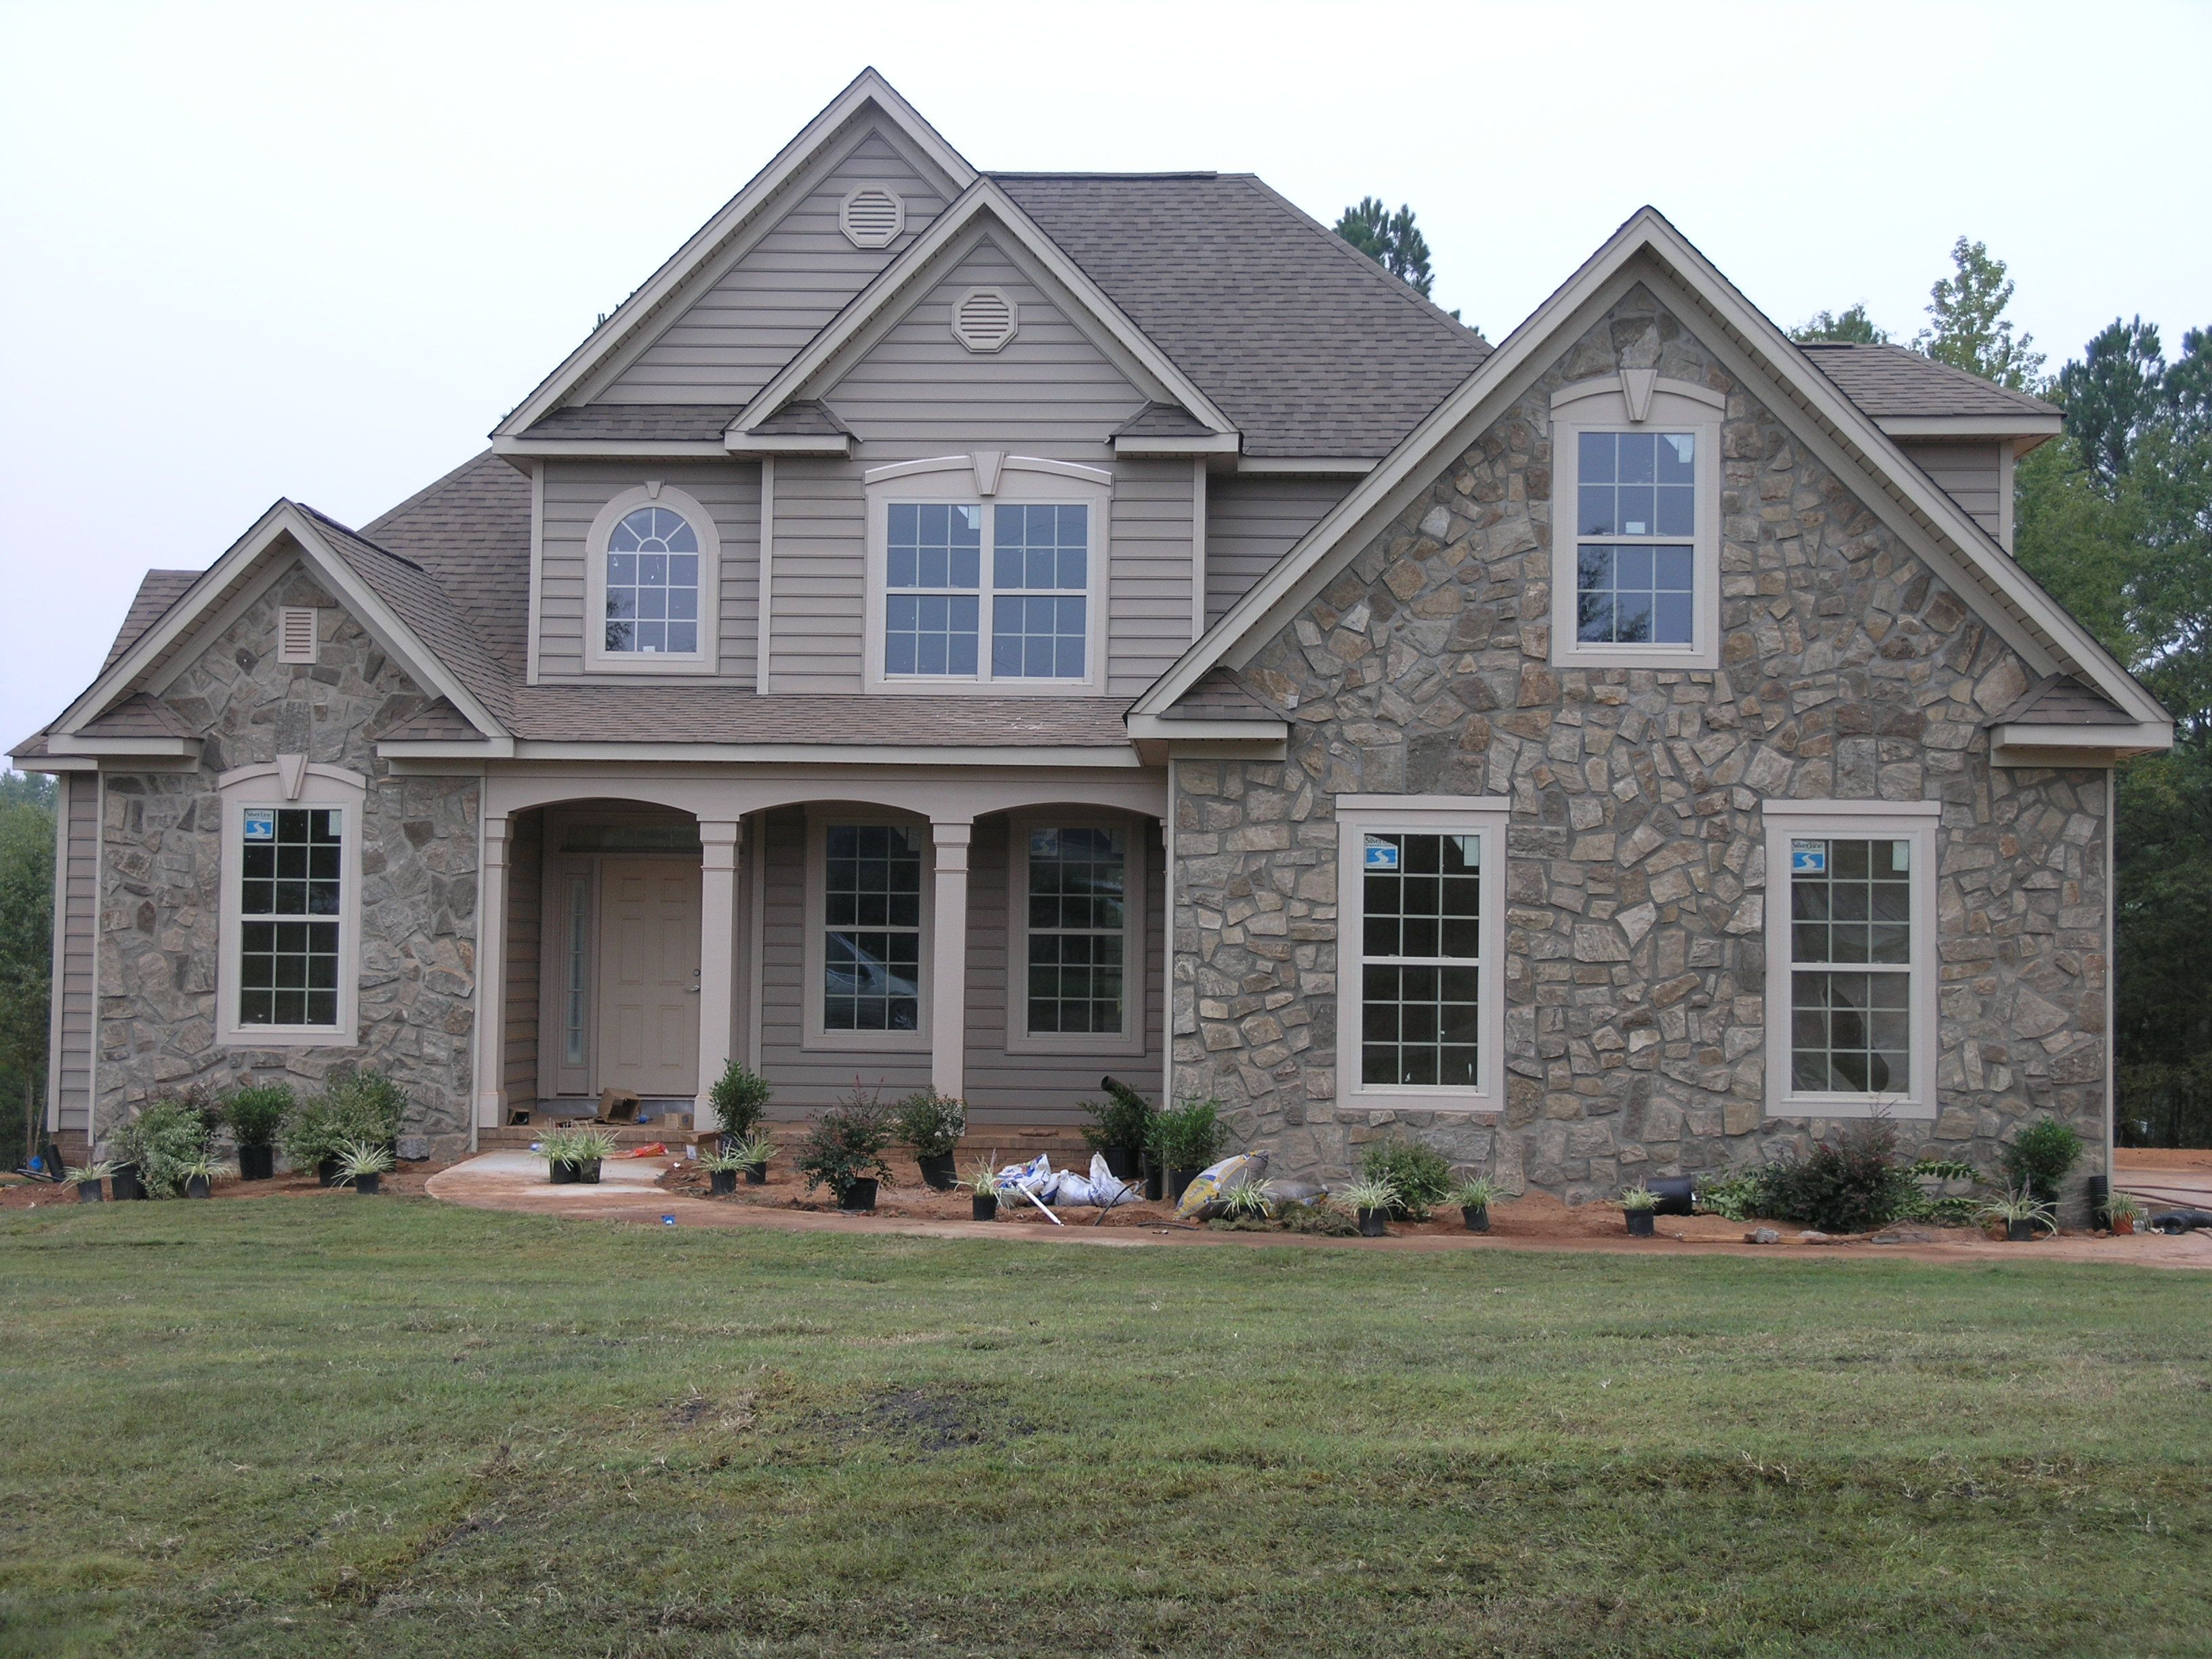 Frank Betz Homes For Sale Google Search House Exterior House Elevation House Styles